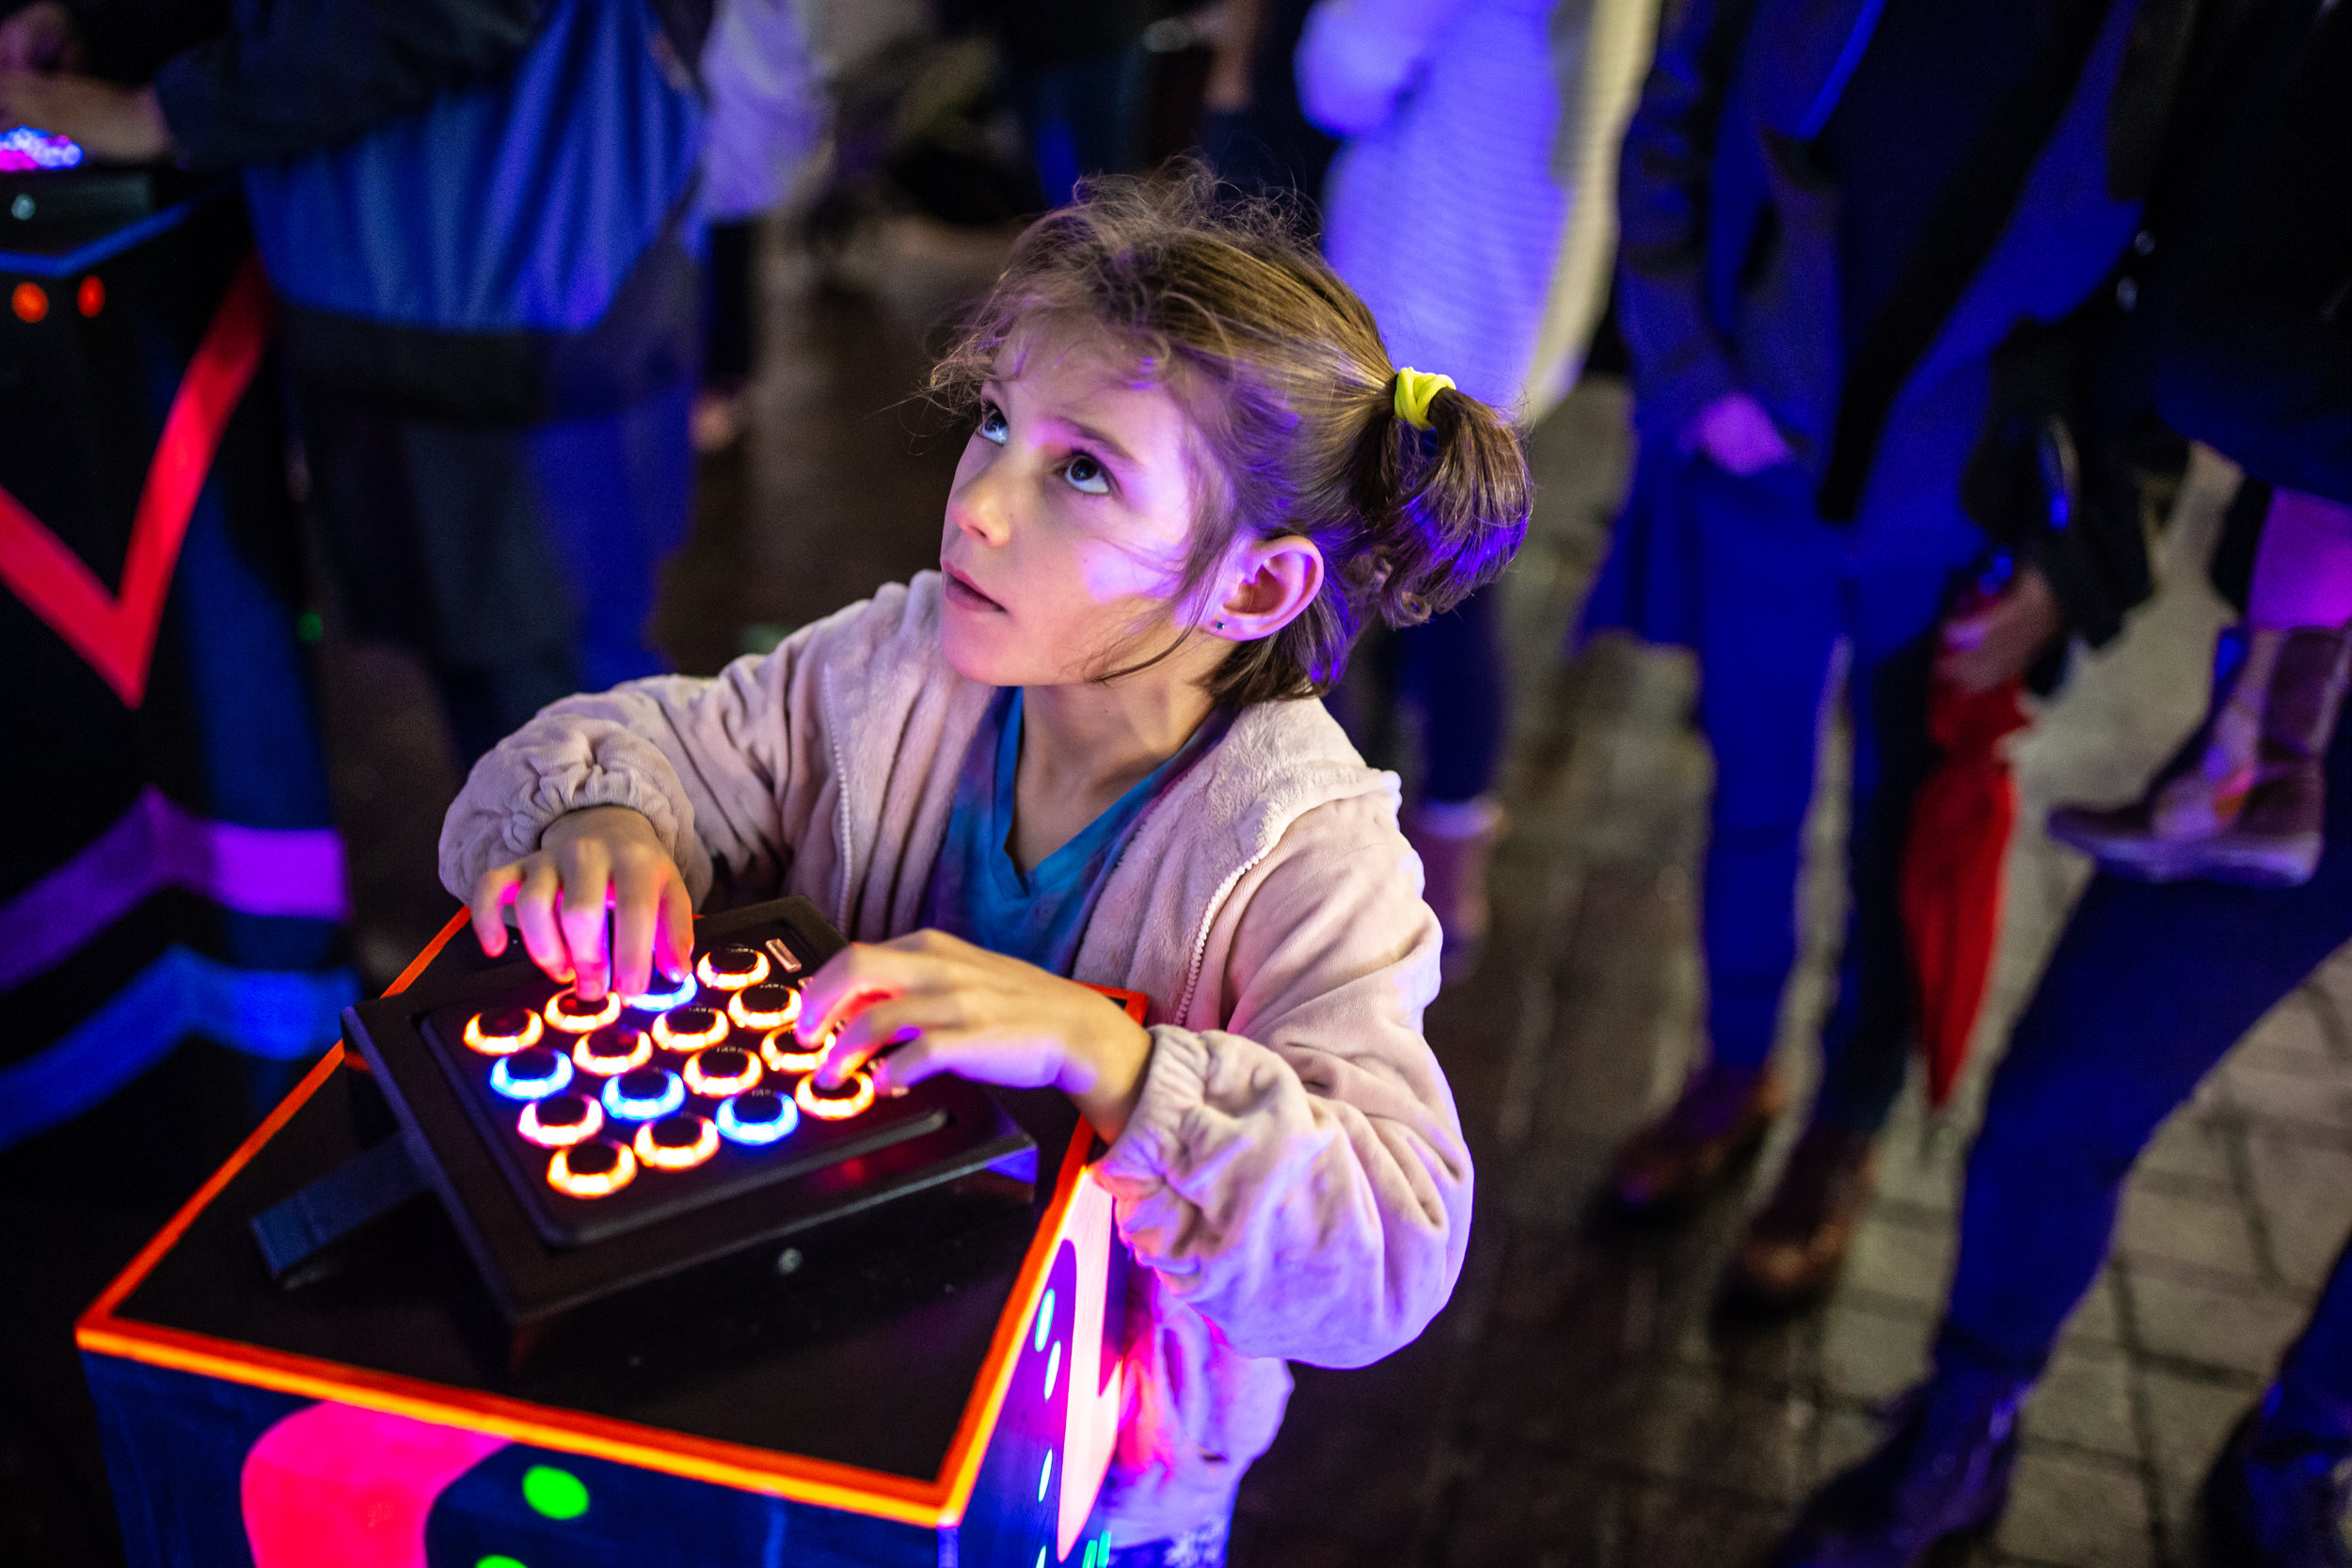 Play_Stephanie Houten_Illuminus 2018_Photo by Aram Boghosian_4.jpg